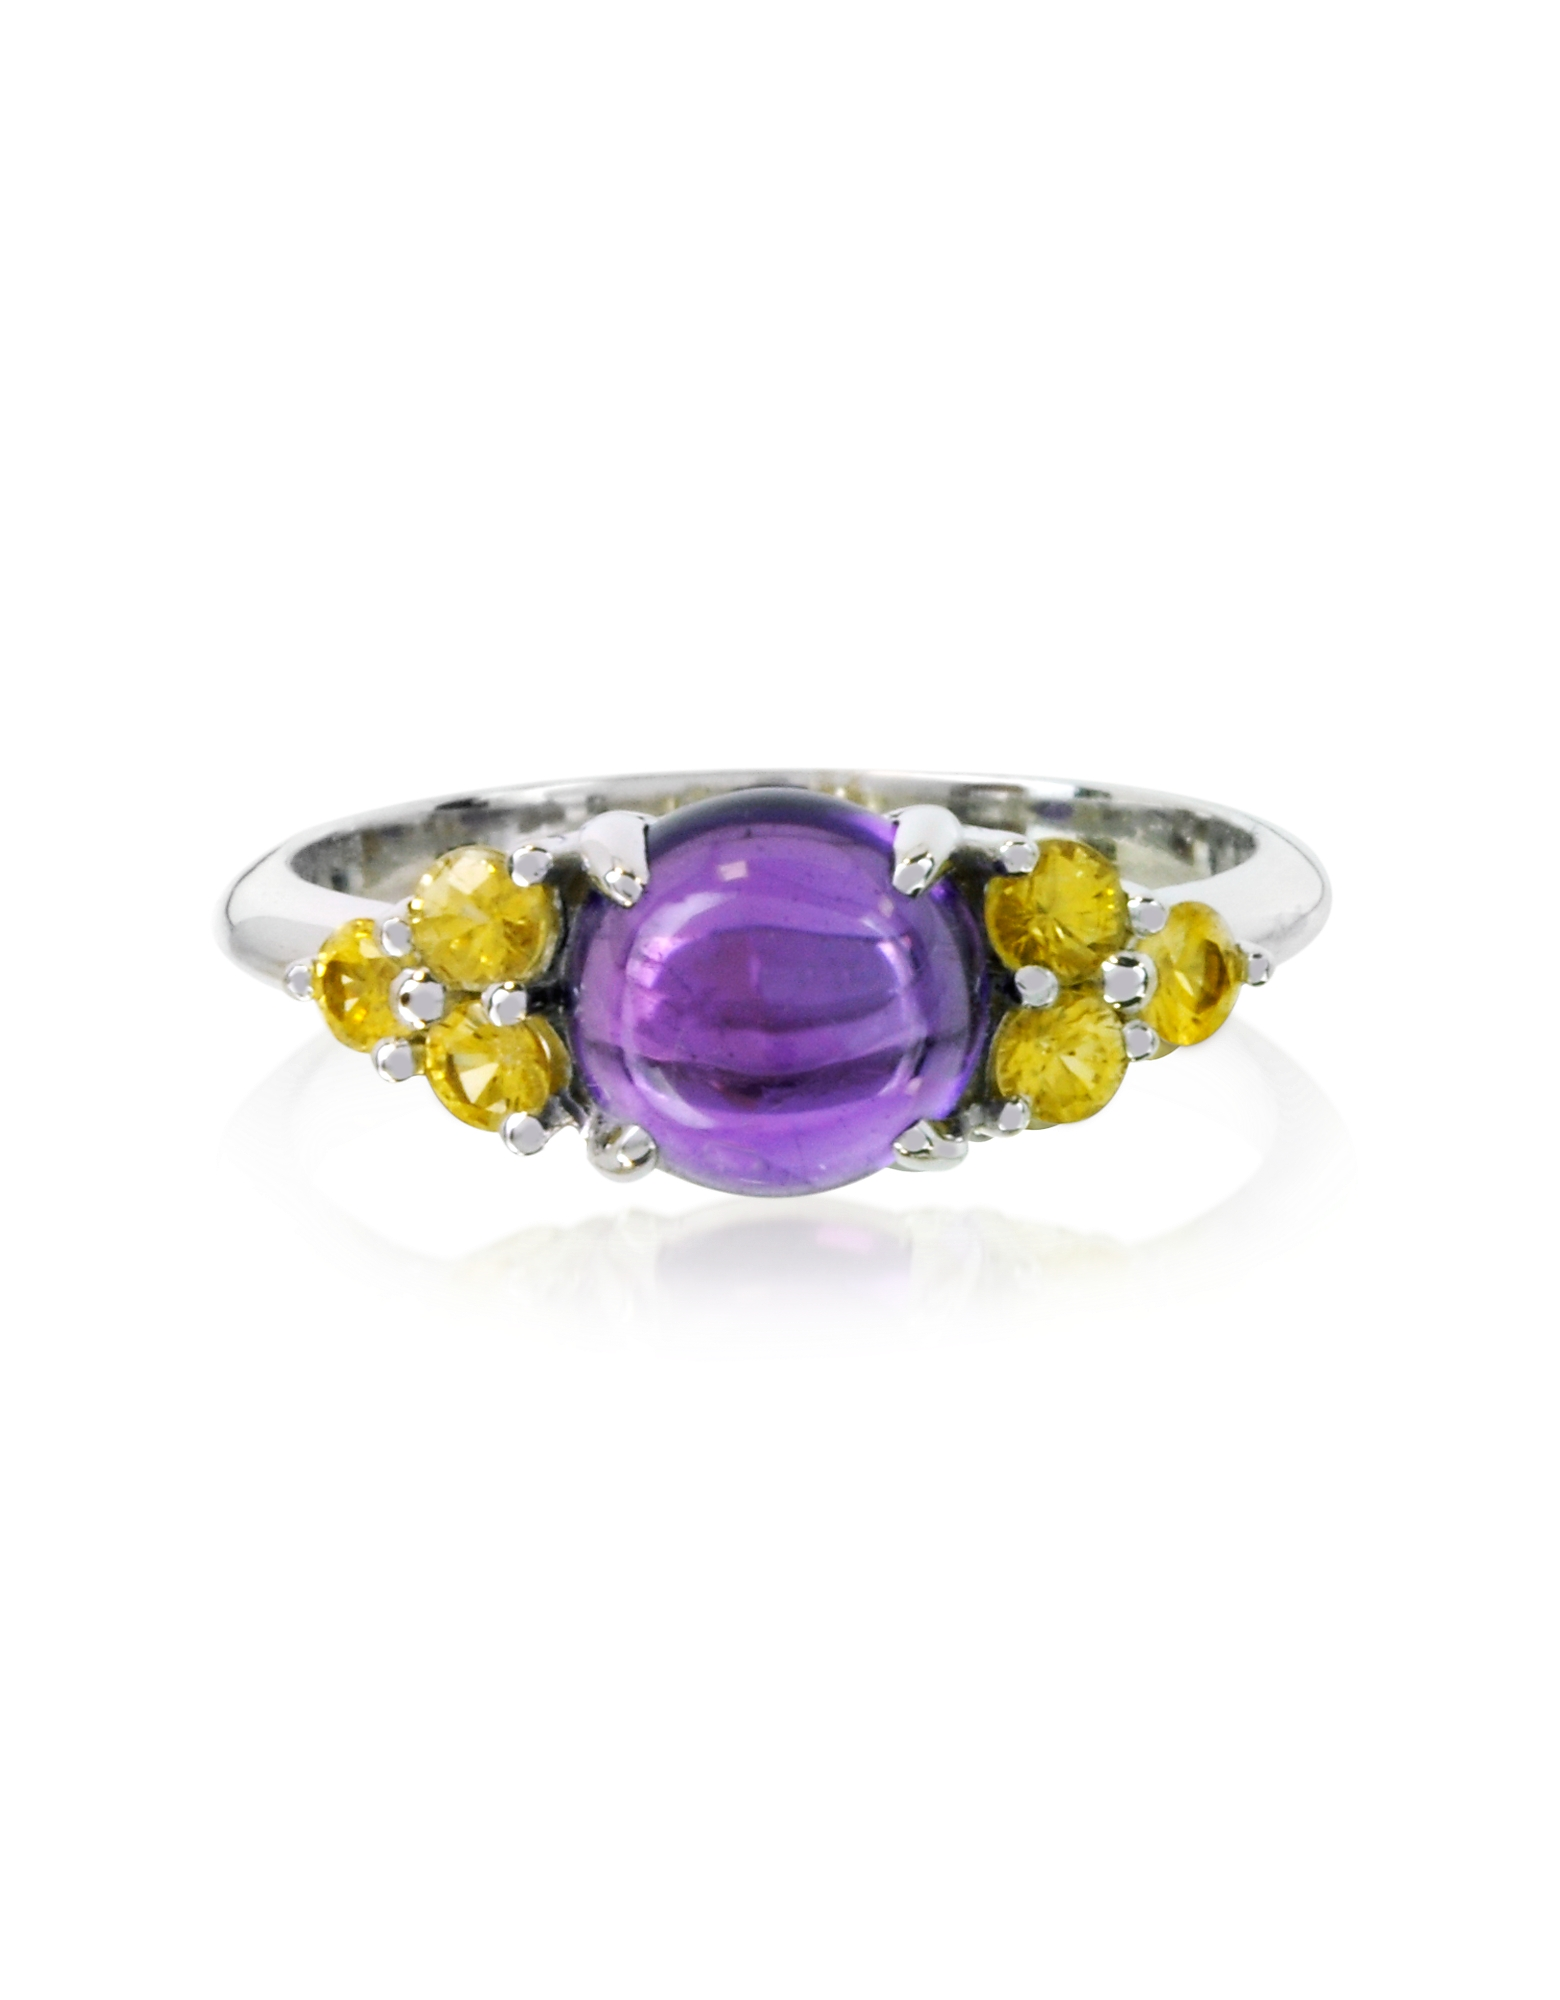 Mia & Beverly Rings, Amethyst and Sapphires 18K White Gold Ring